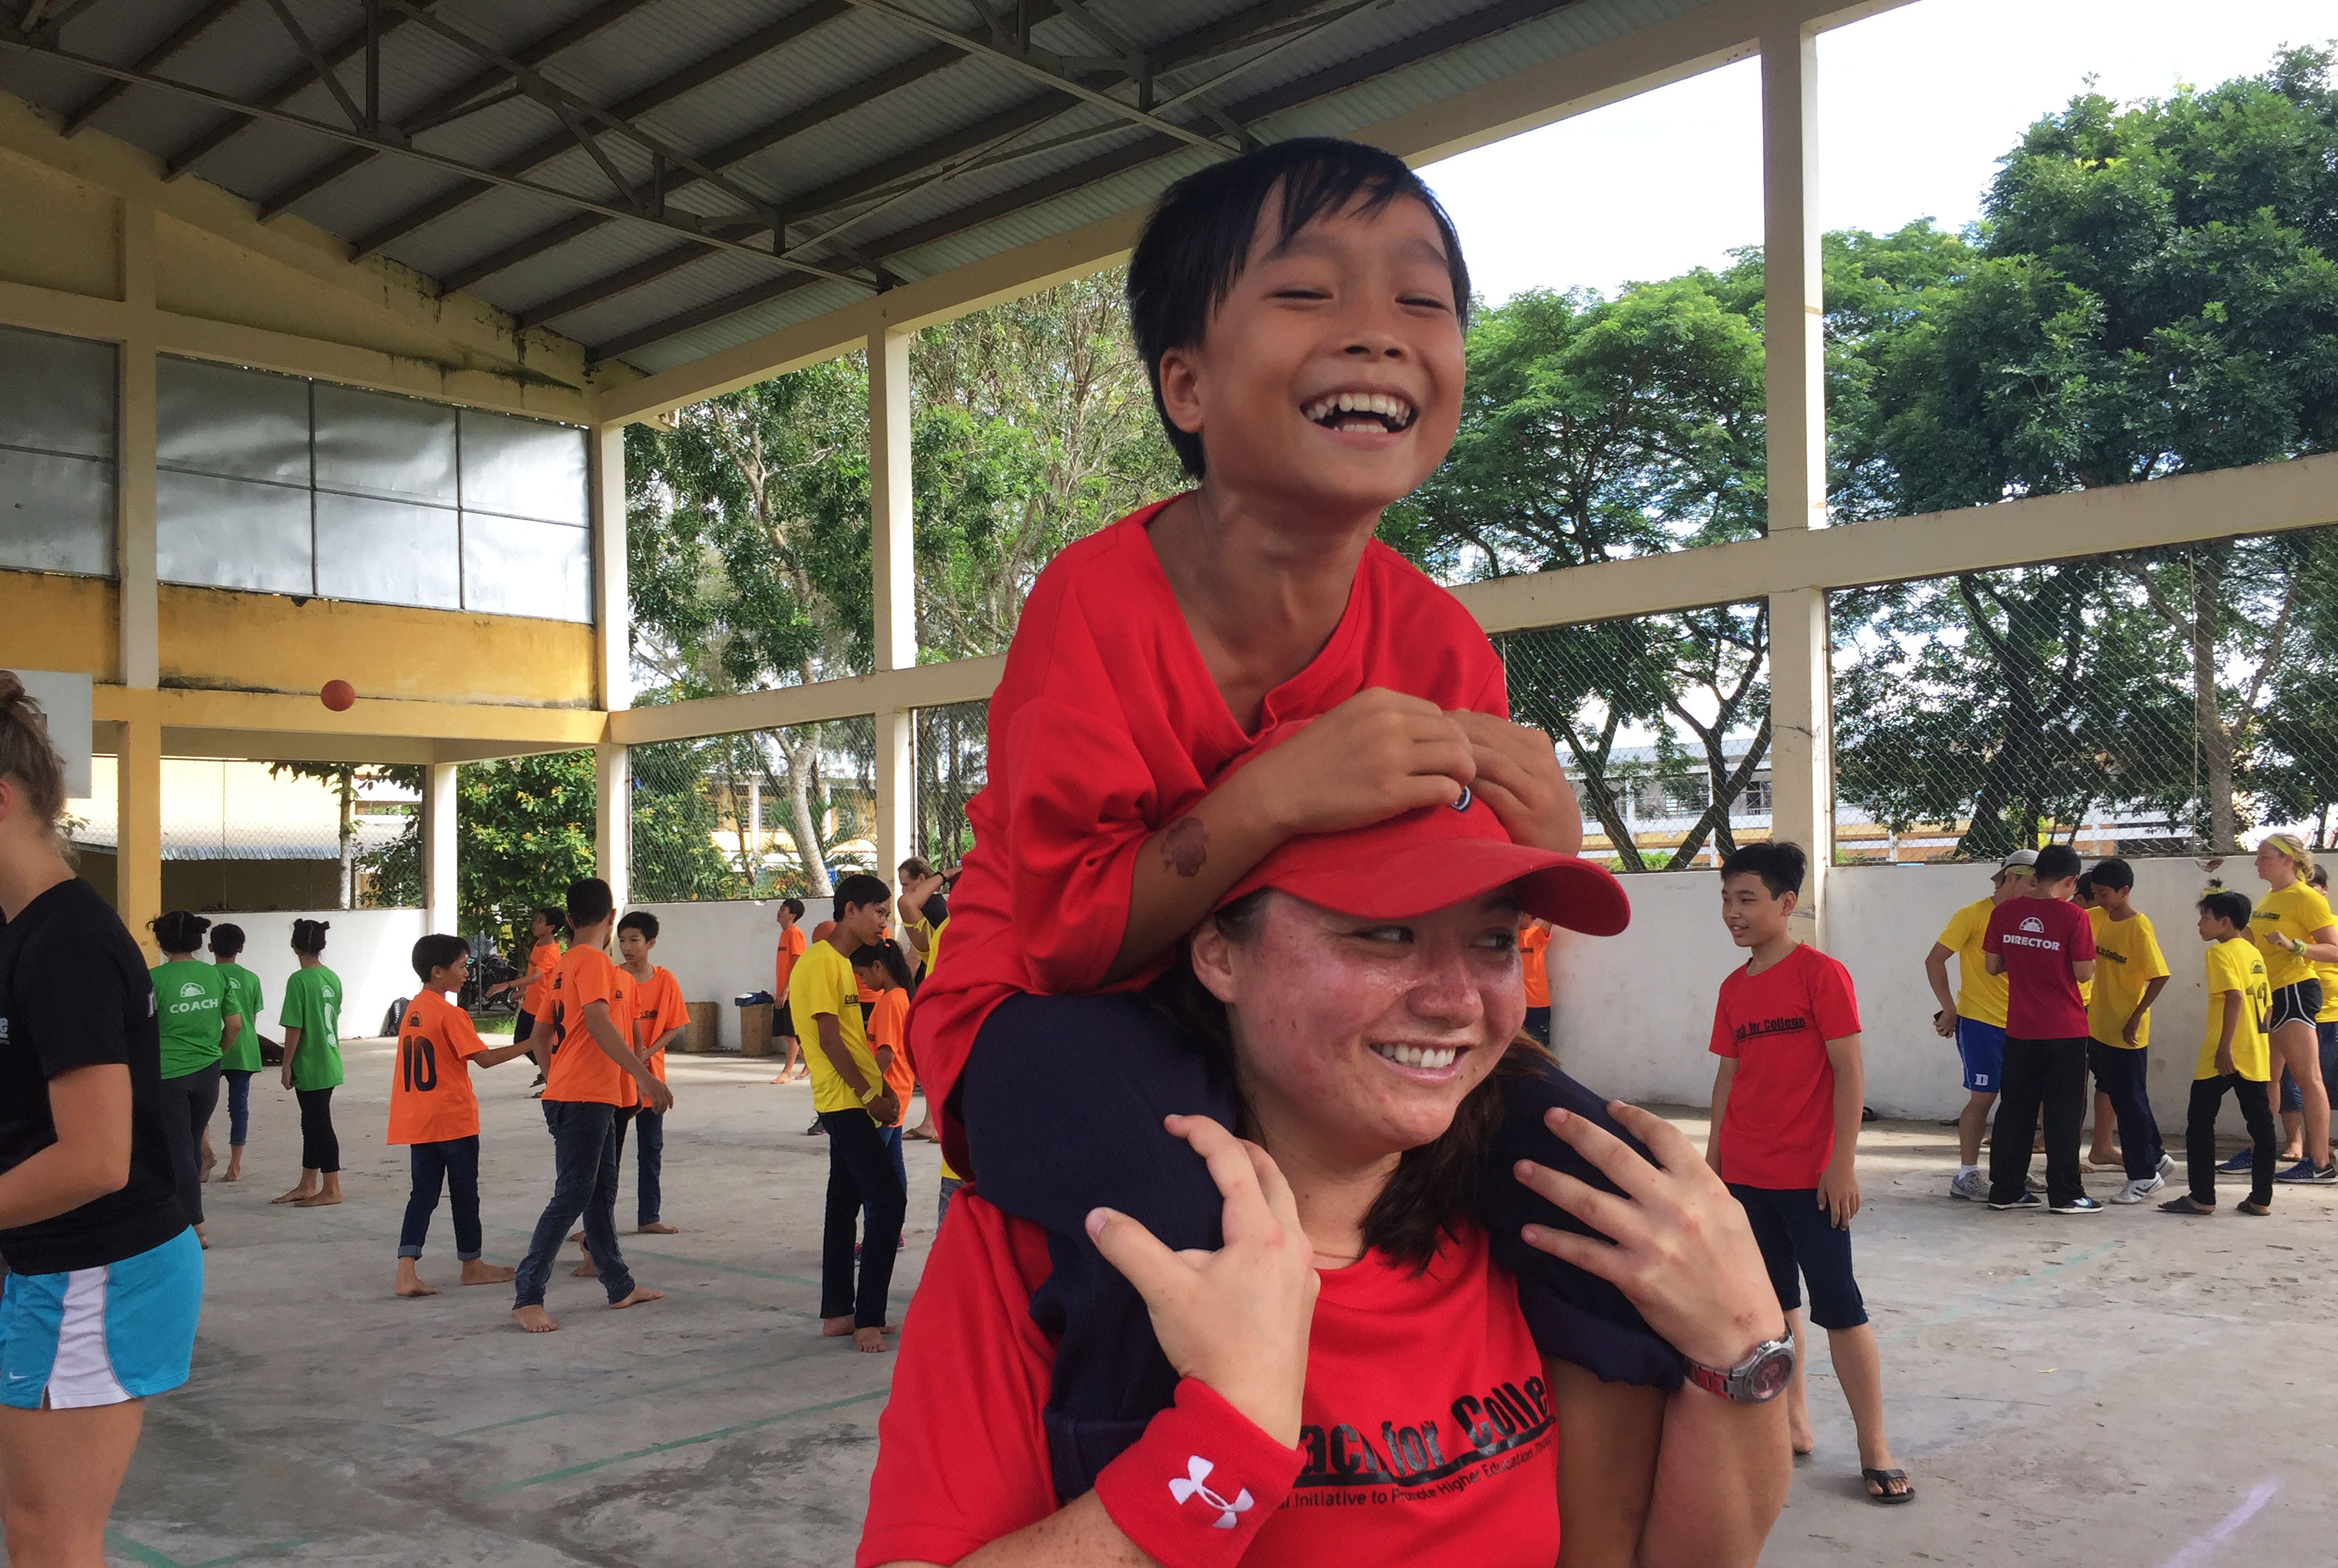 ACE Student-Athlete Giving Camper Piggyback Ride